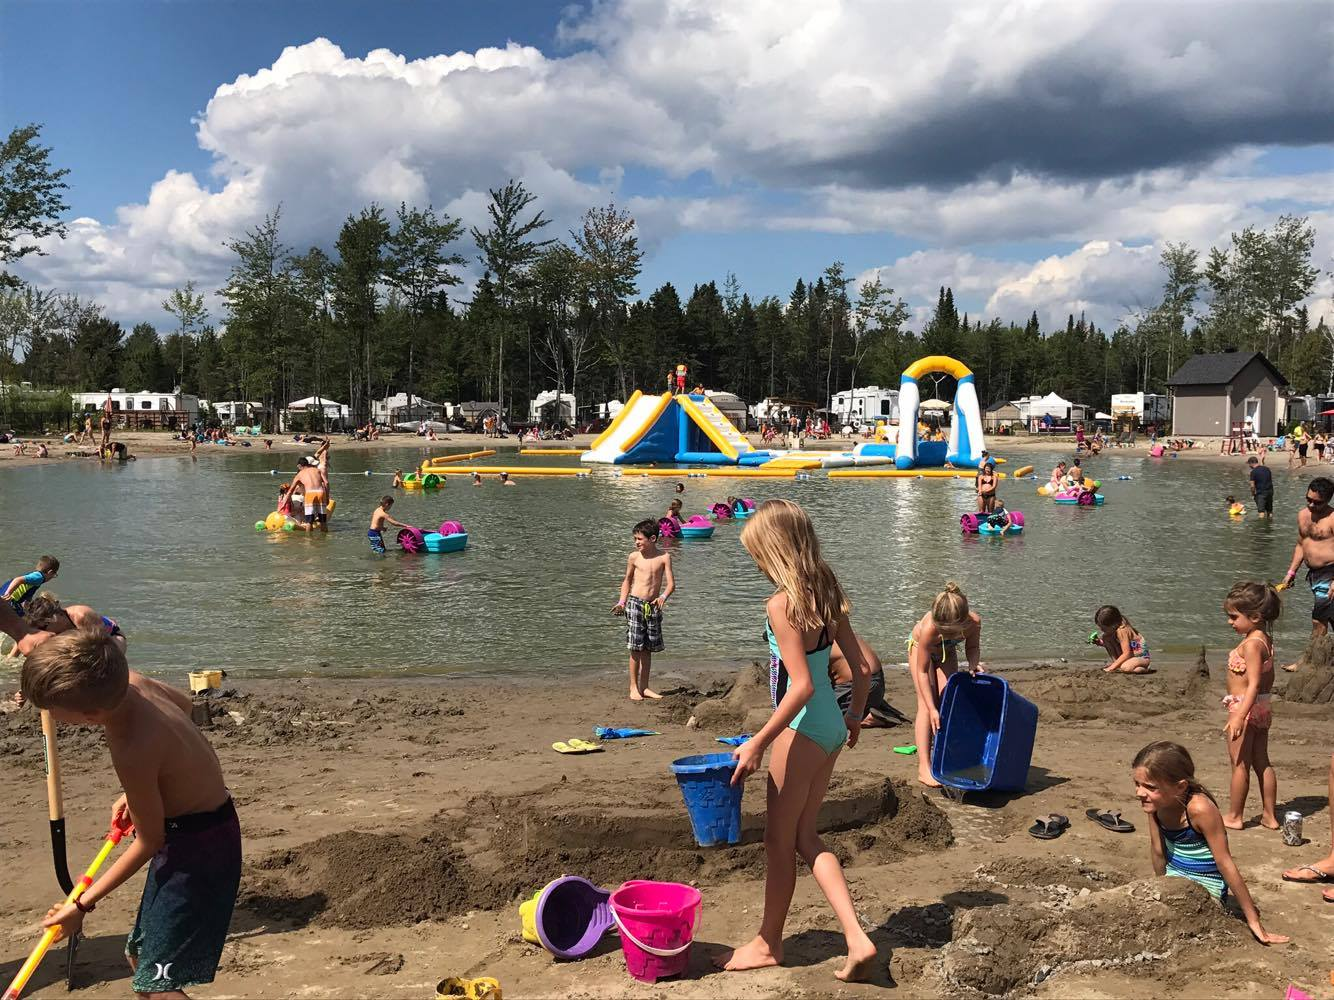 http://www.familizoo.com/ENG/wp-content/uploads/2019/01/beach-party-2017-complexe-atlantide-8.jpg